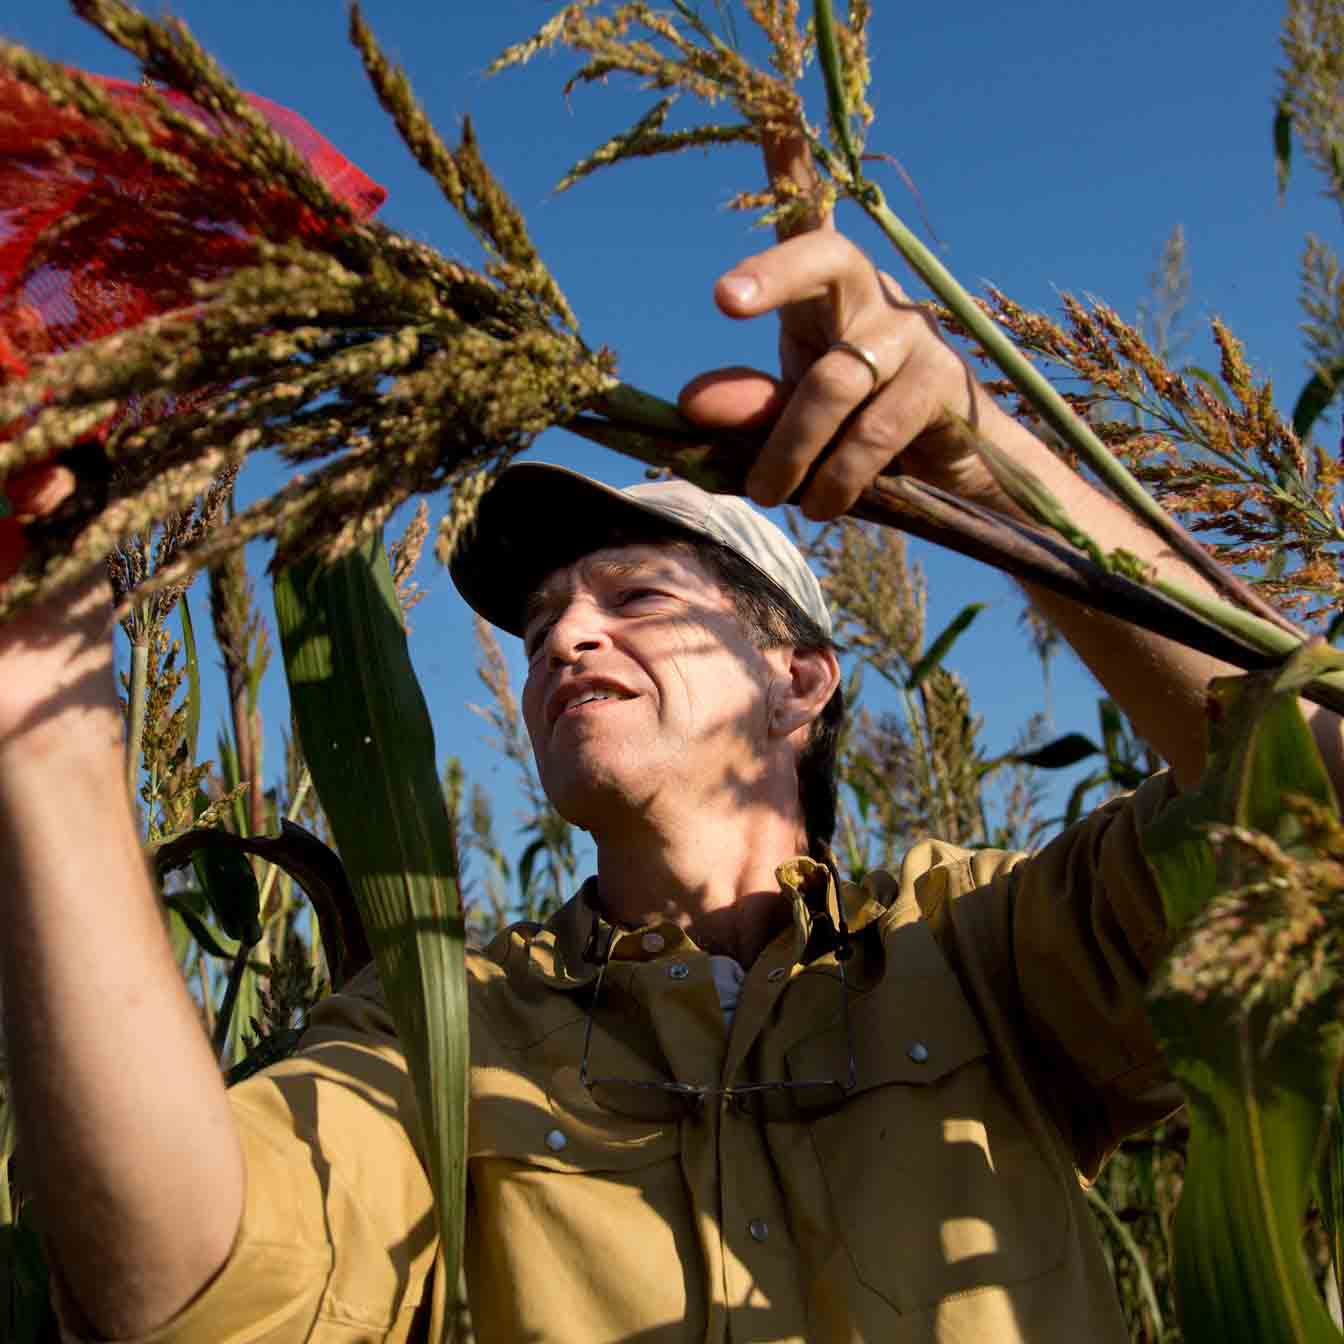 UGA Regents Professor Andrew Paterson is leading an international team working toward sustainable intensification of sorghum production.